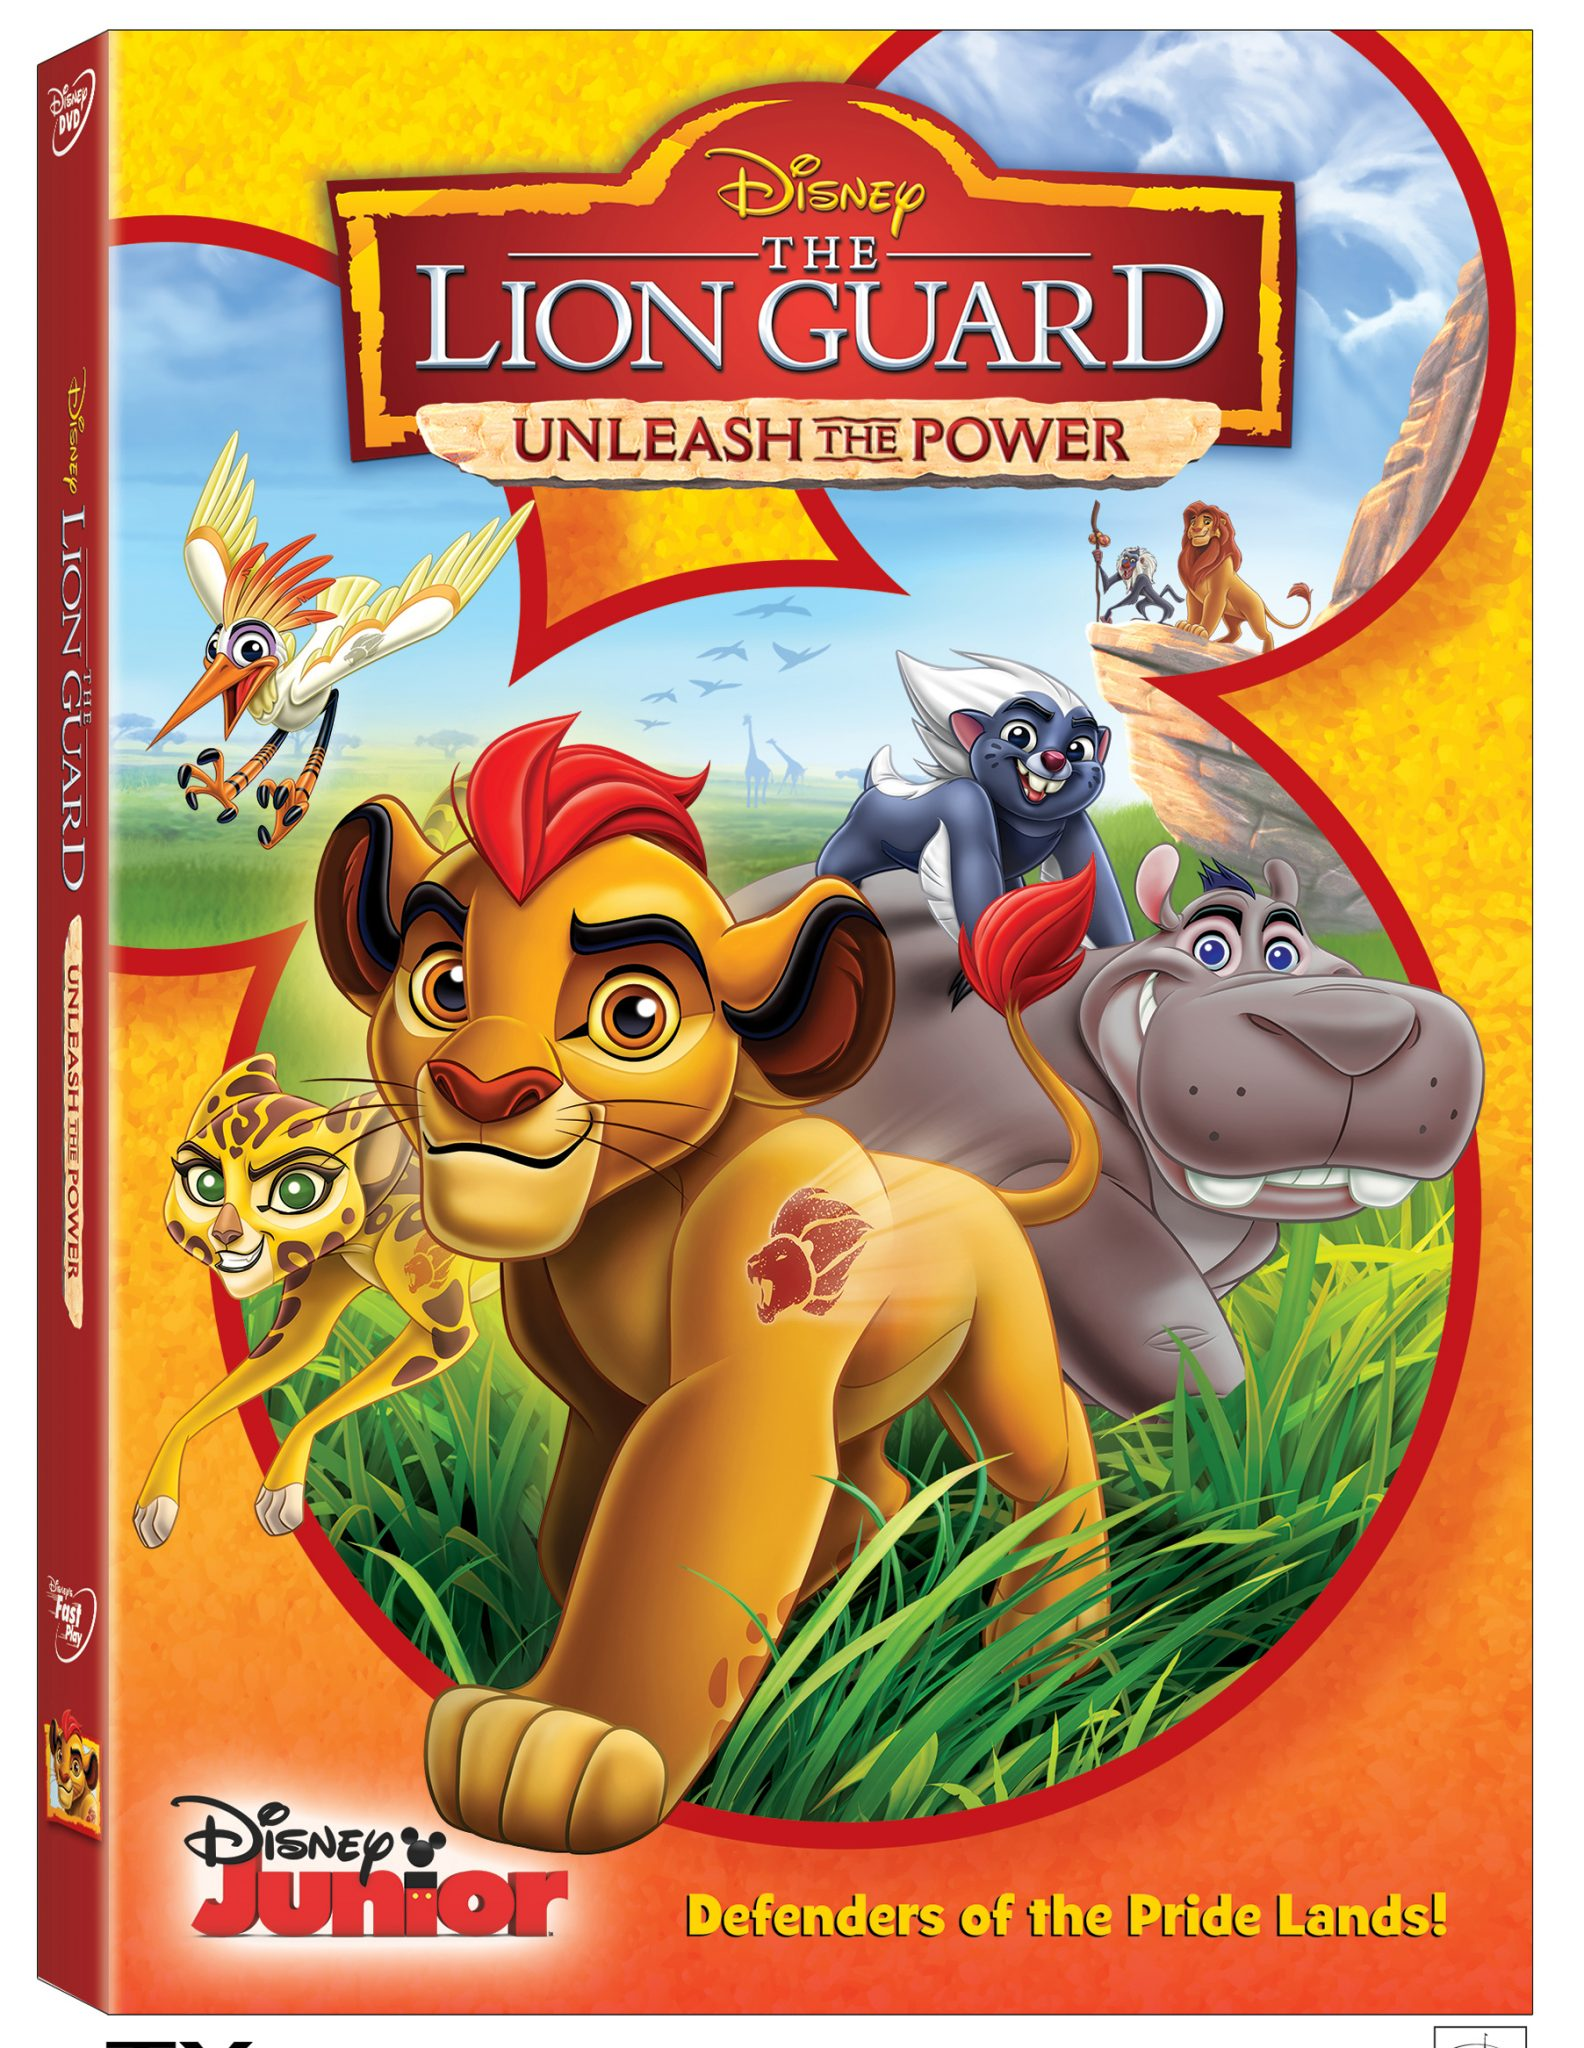 The Lion Guard Unleash the Power